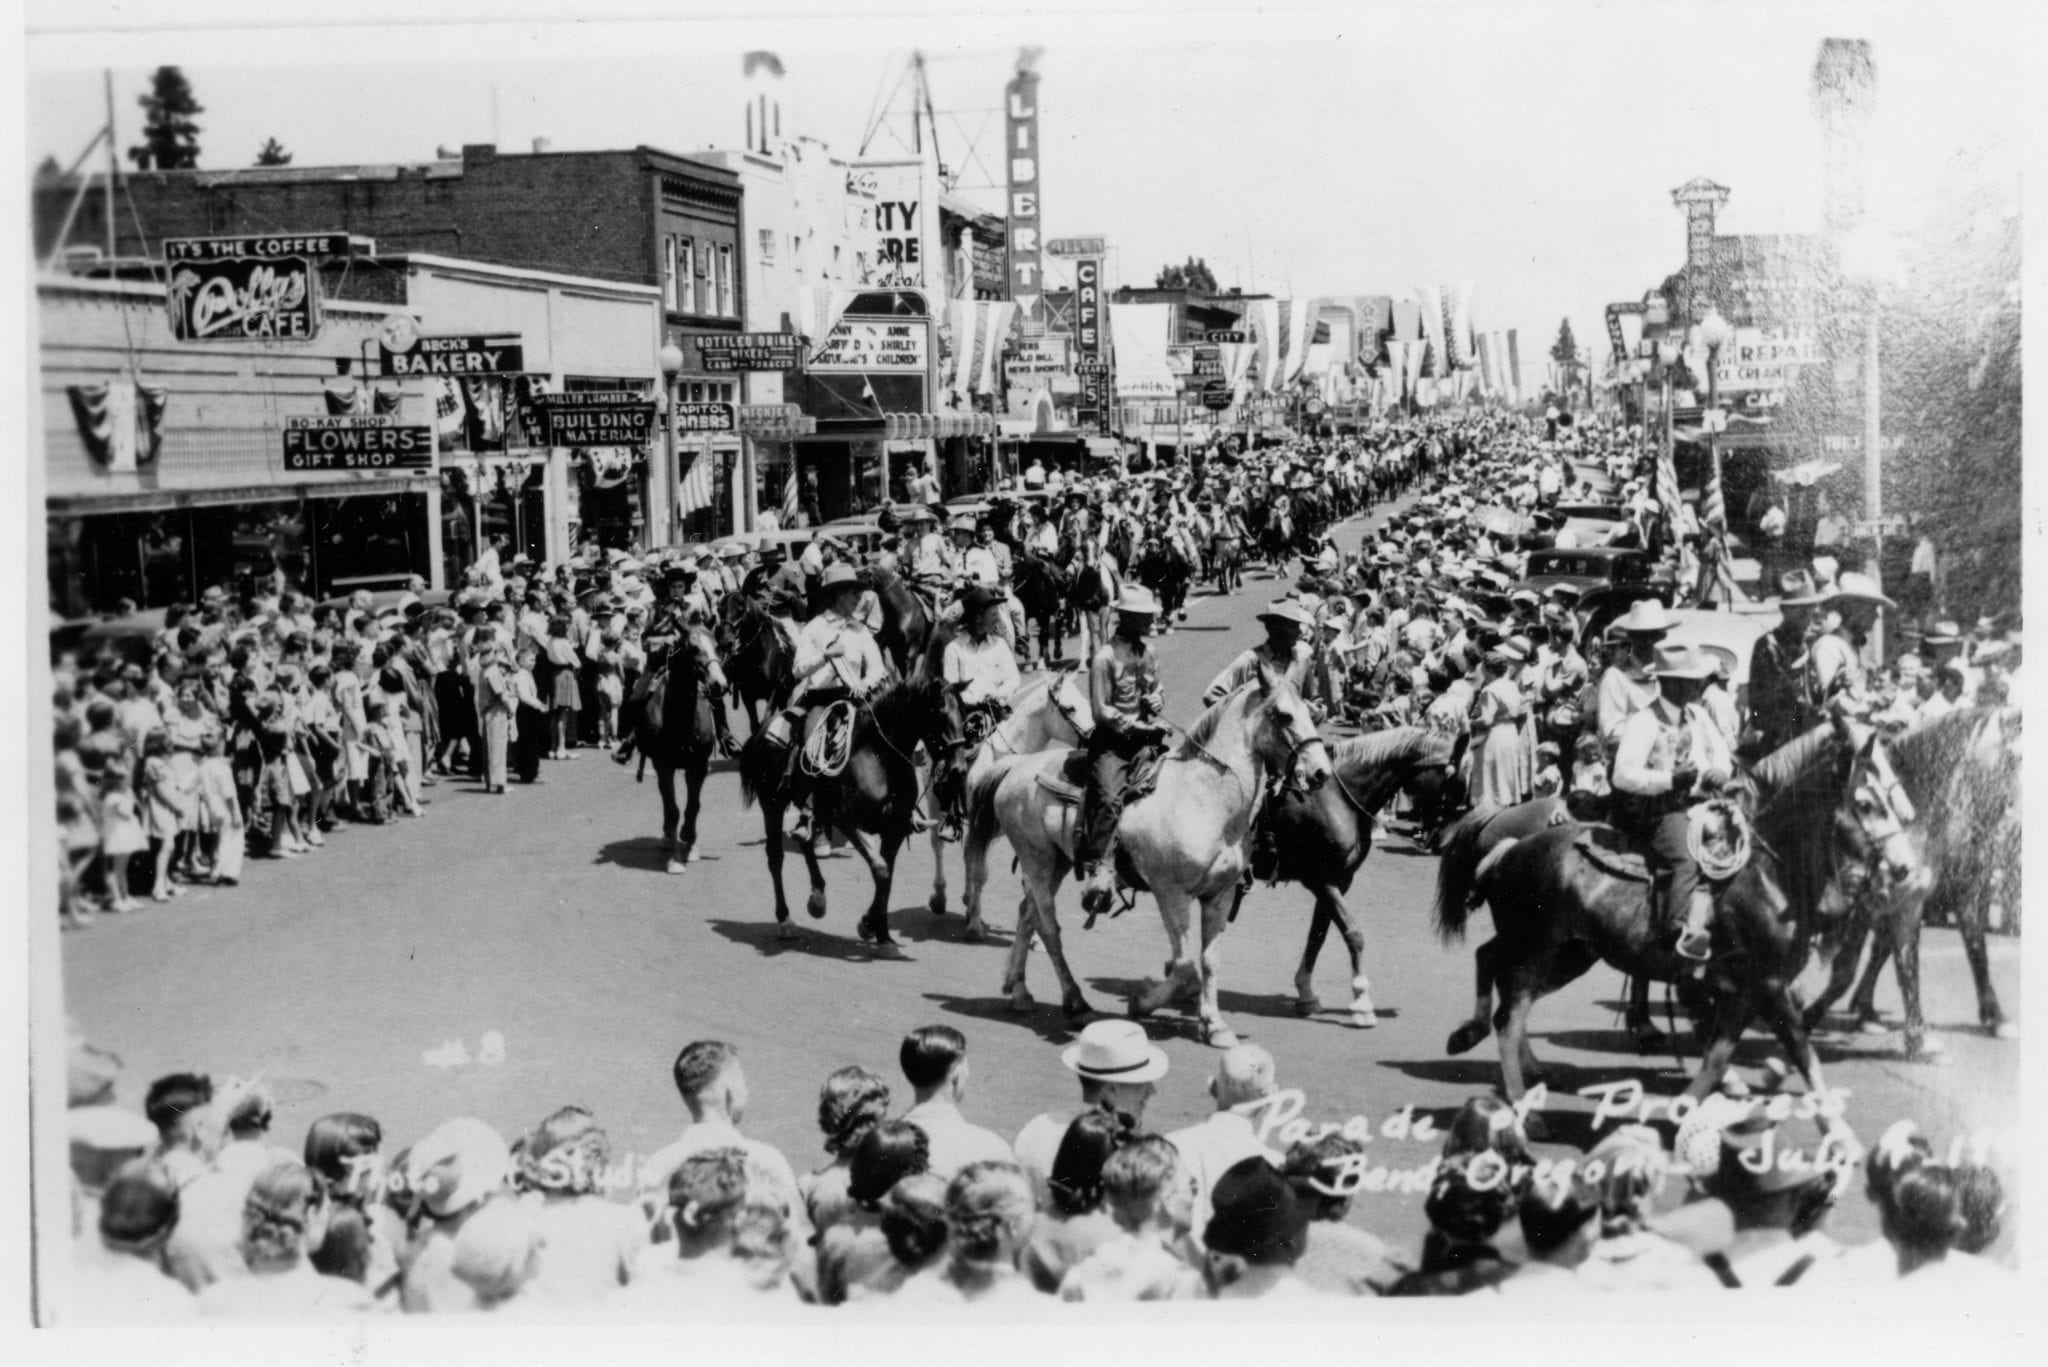 Horsebacked riders stroll through downtown circa 1940. (Note the Tower and Liberty theaters in the background.)